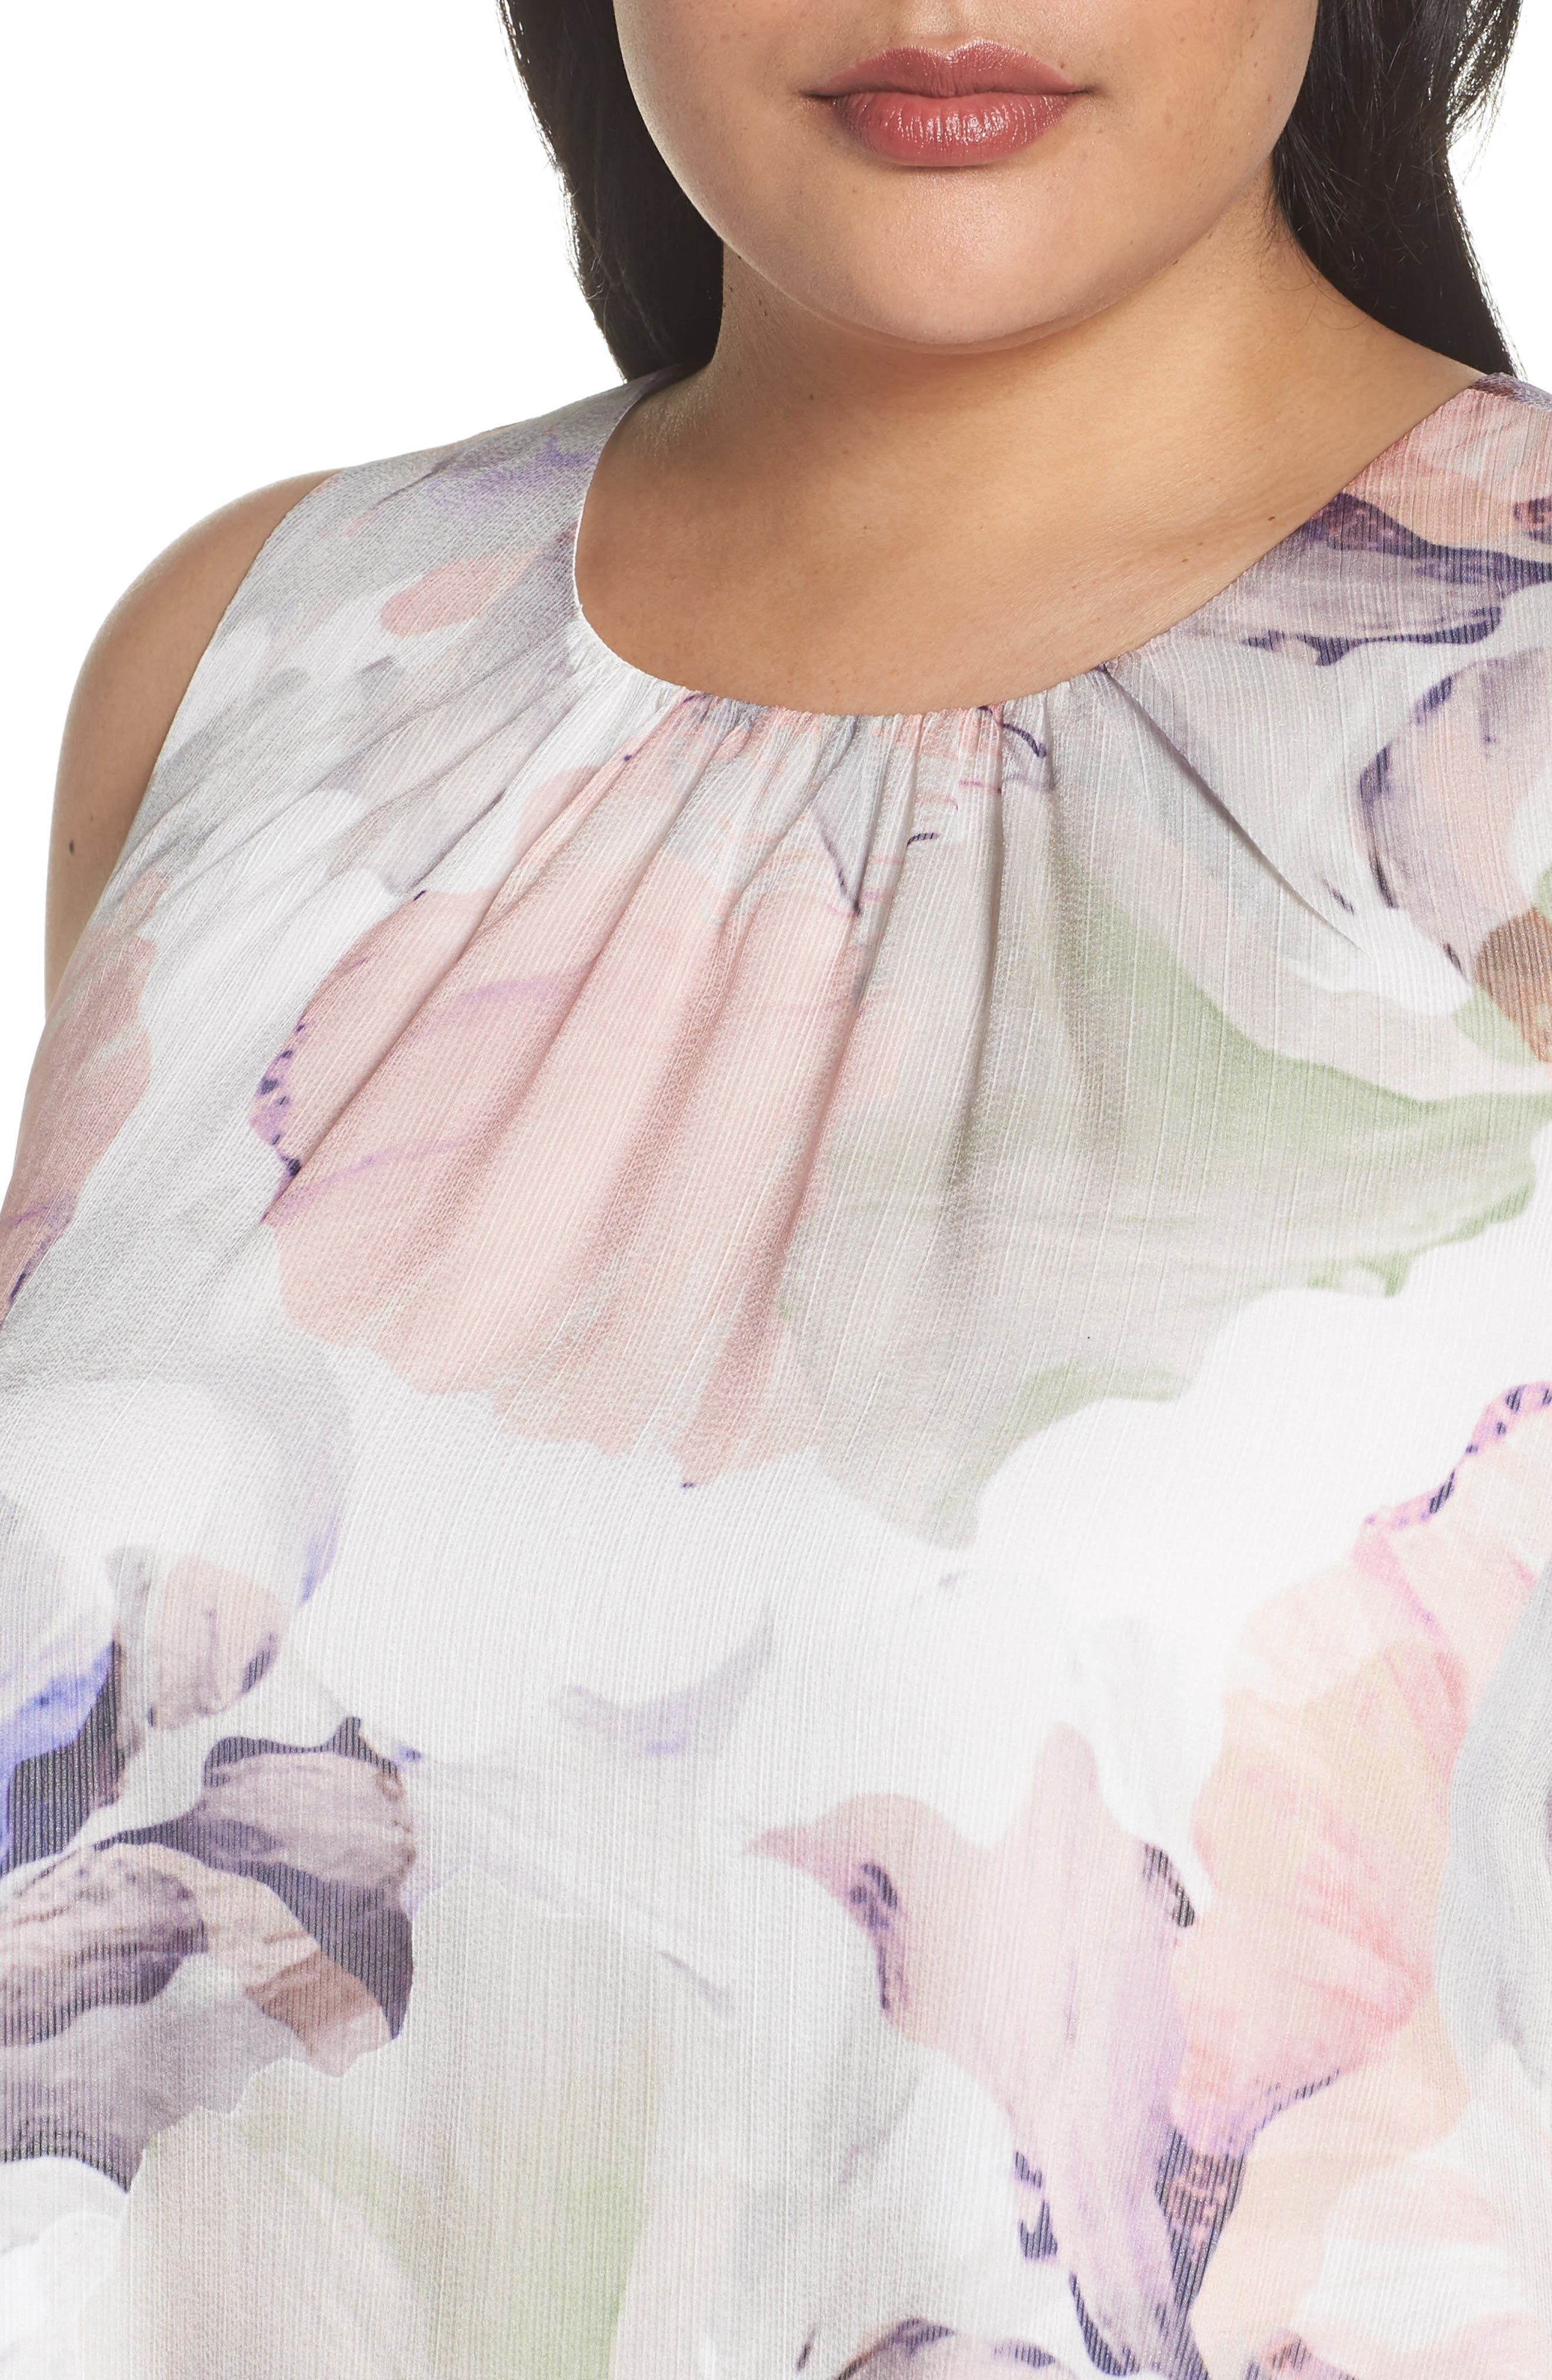 Diffused Blooms Blouse,                             Alternate thumbnail 4, color,                             New Ivory